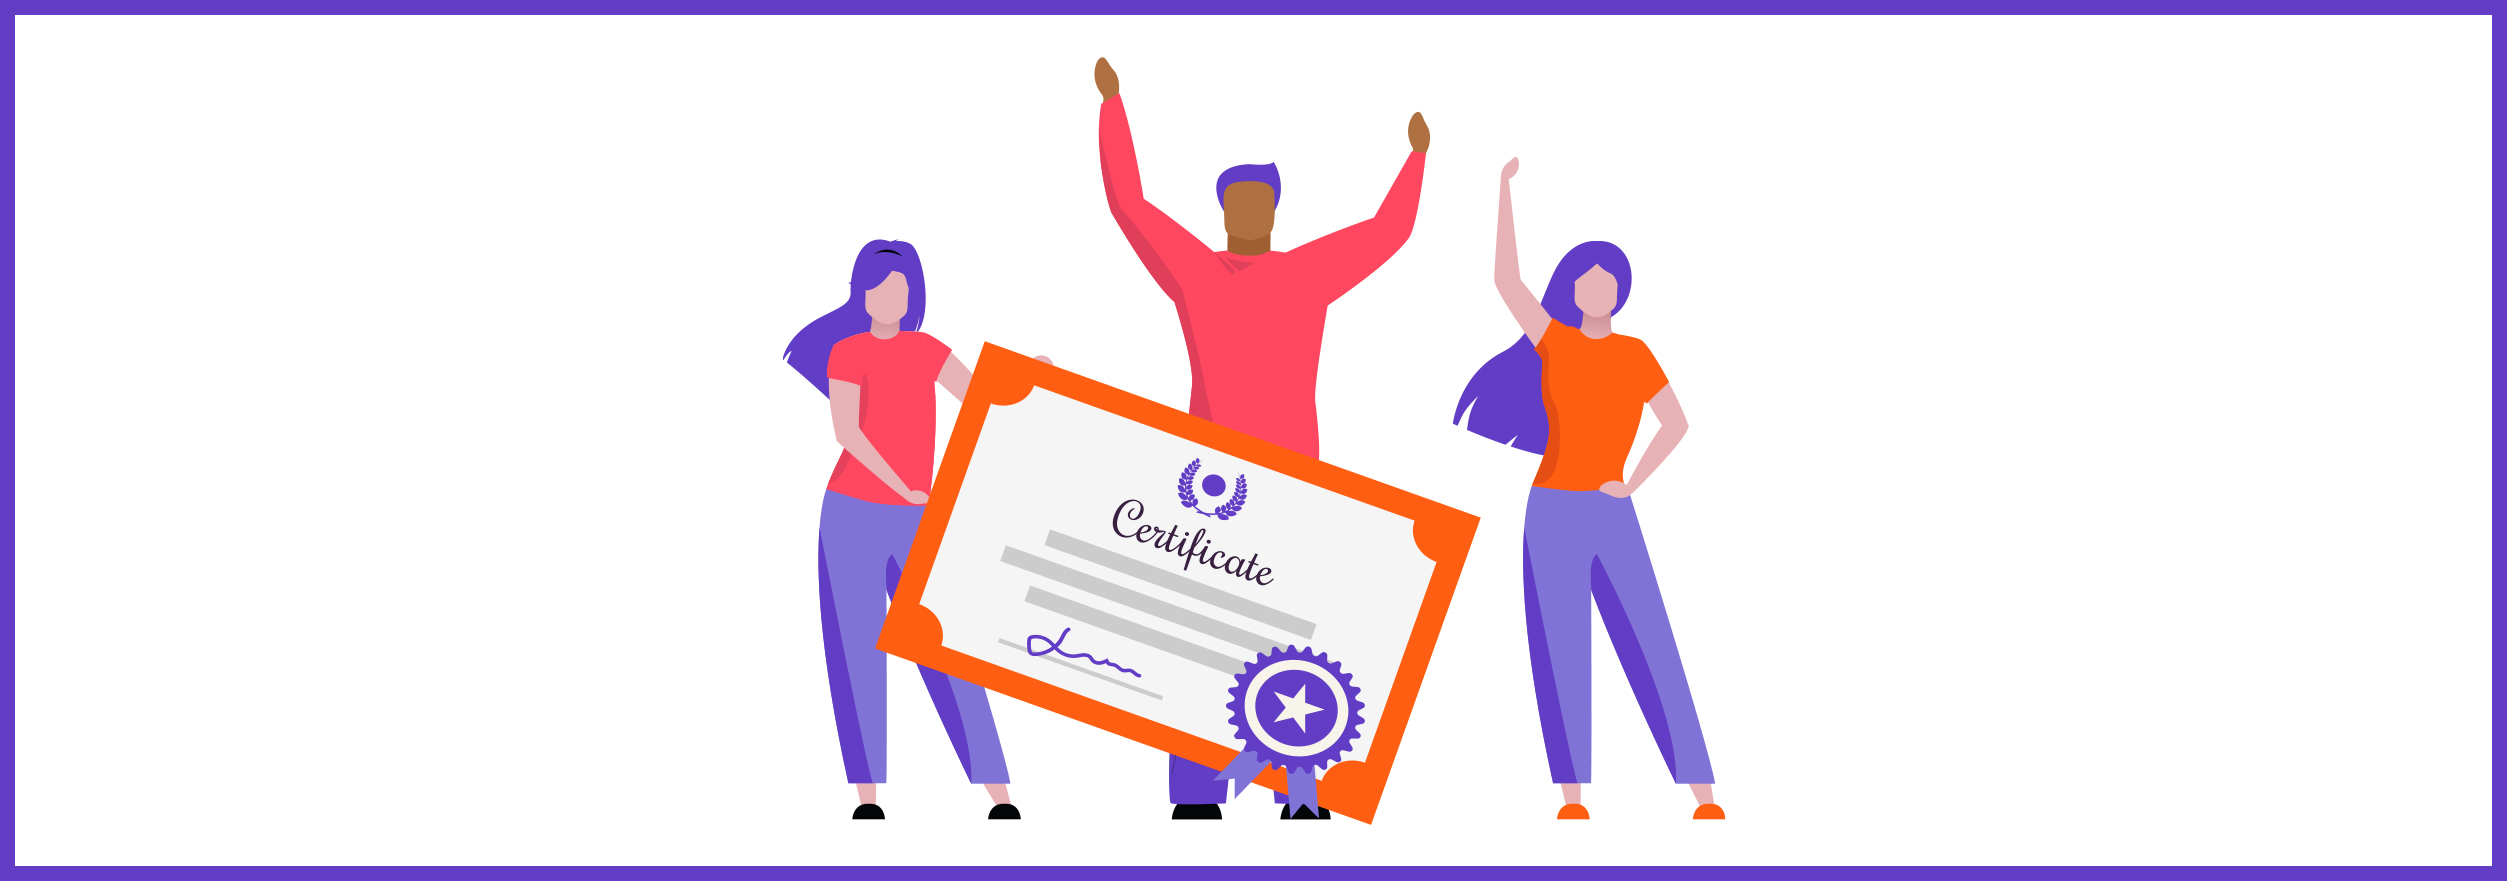 15 Marketing Certifications That Can Land You a Job at Ladder in 2021